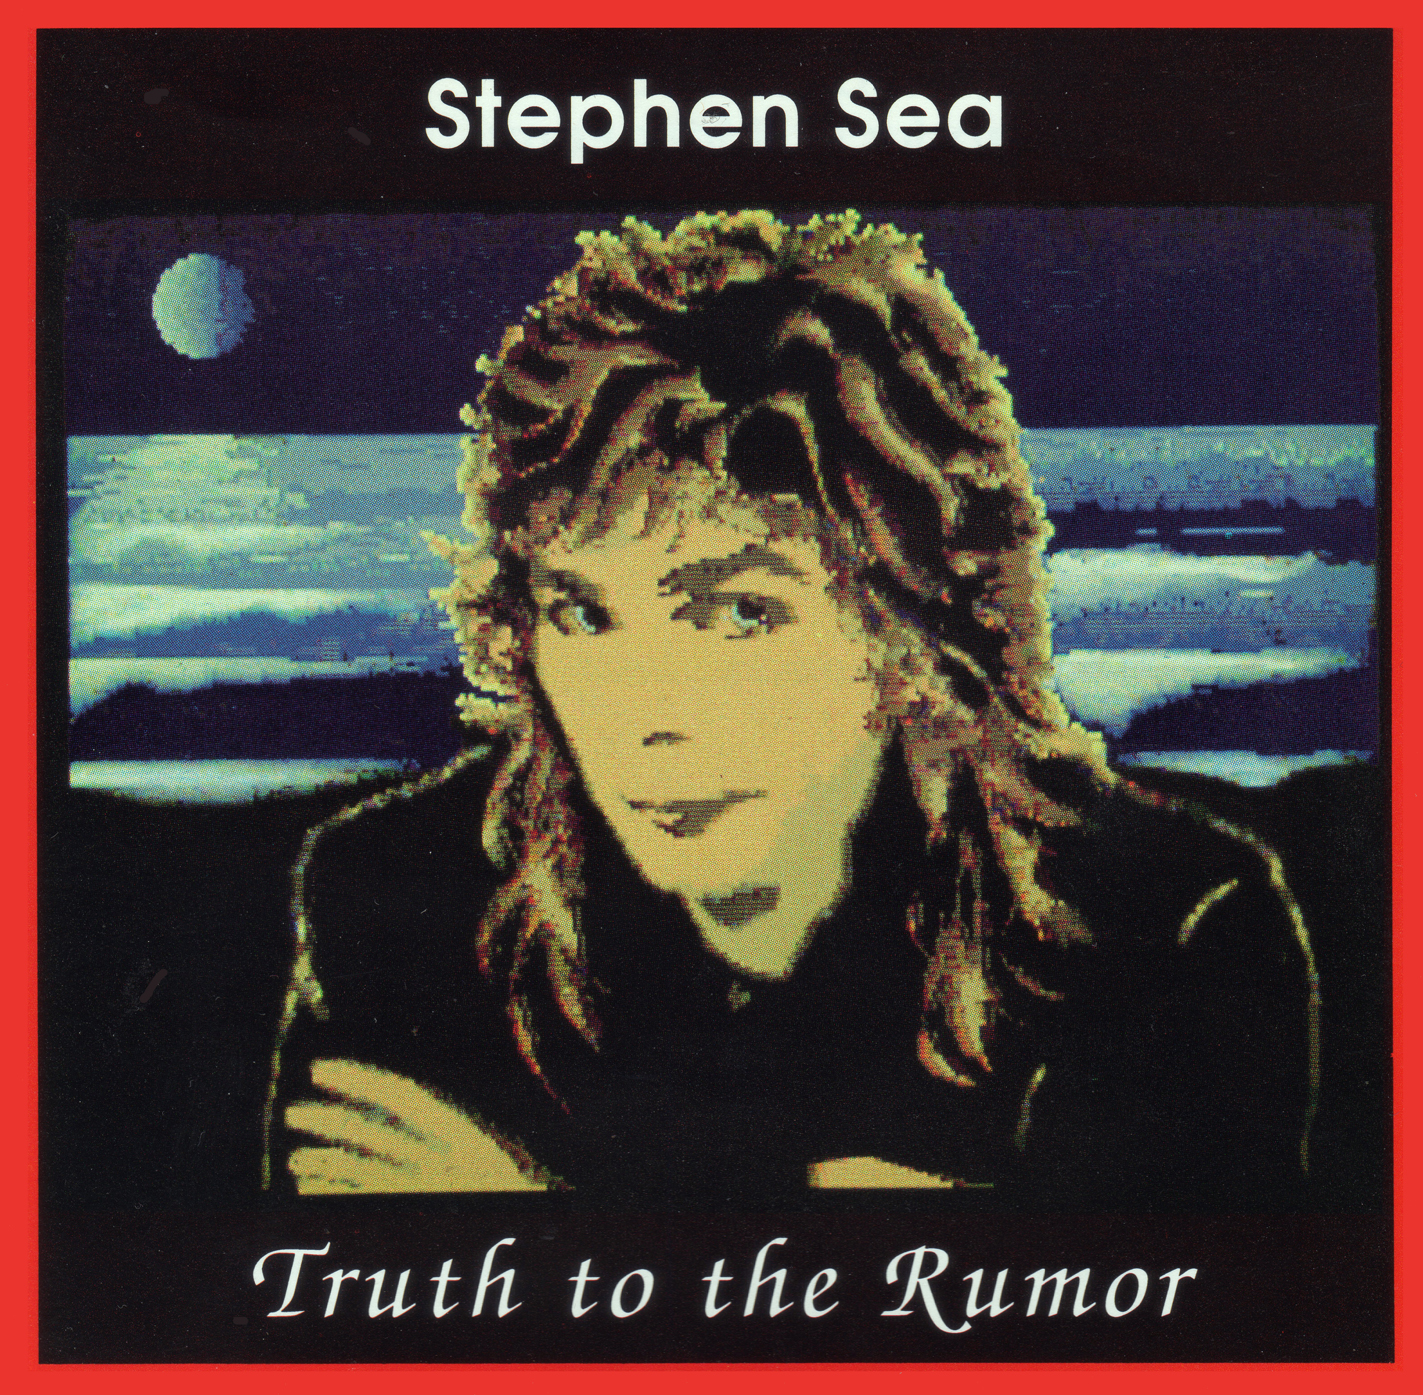 Truth to the Rumor by Stephen Sea